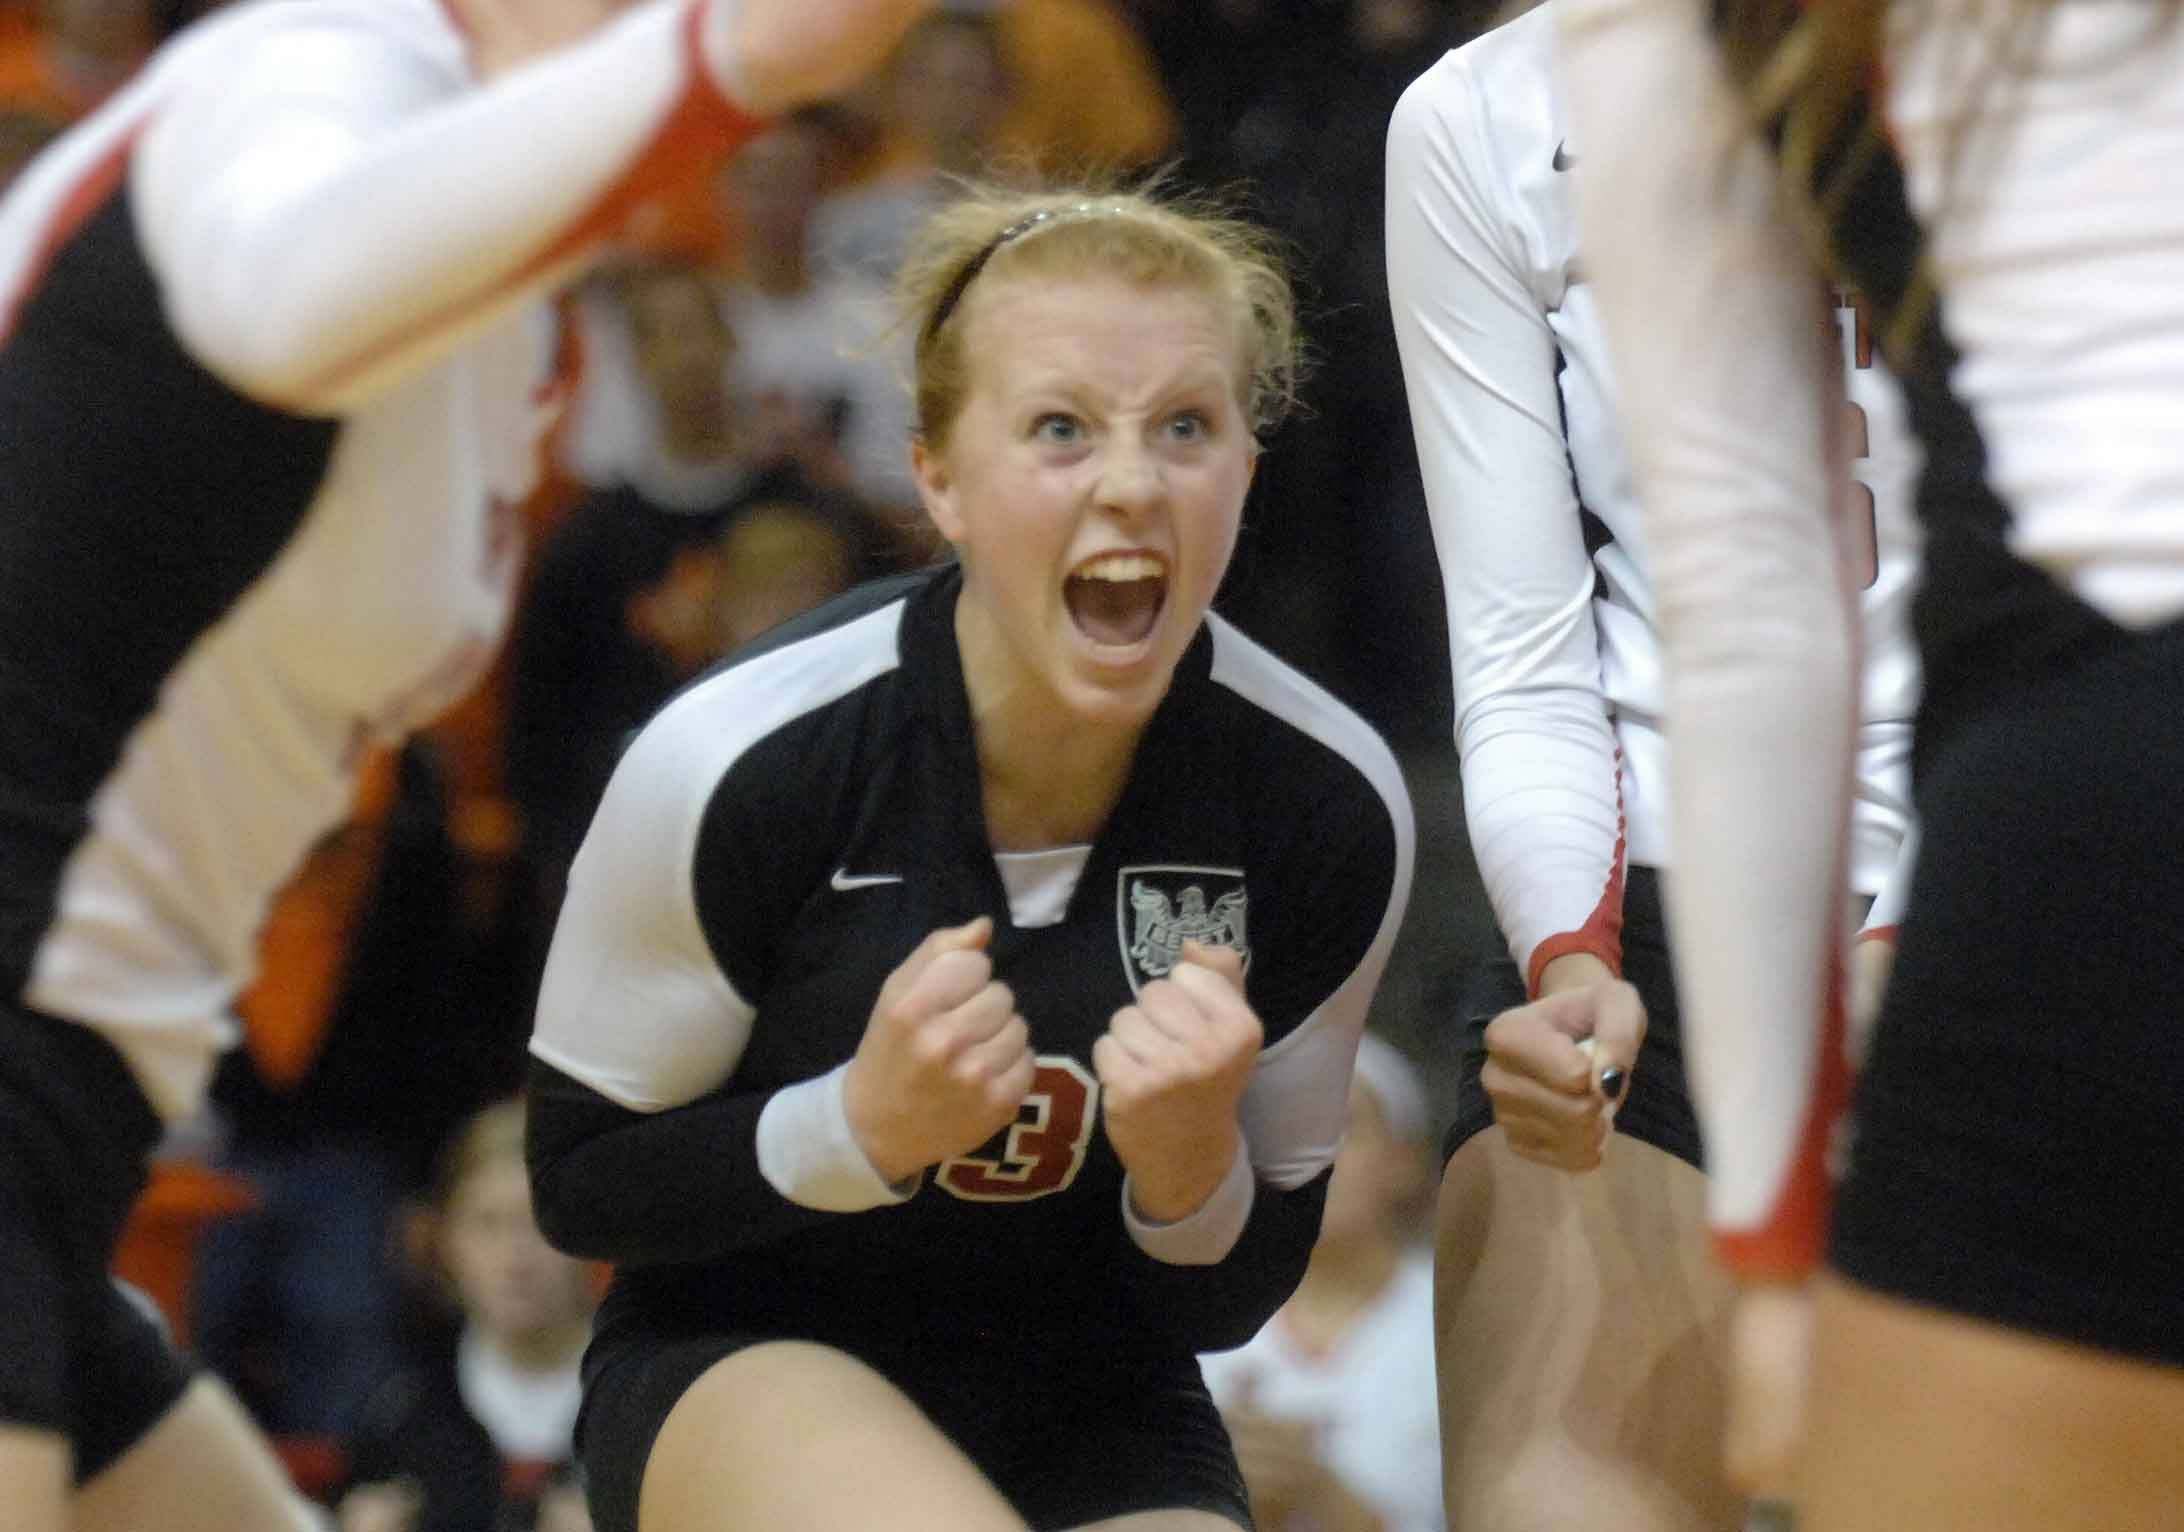 Sheila Doyle of Benet lets out a yell during the Benet vs. St. Charles East girls volleyball 4A semifinal Friday in Normal.